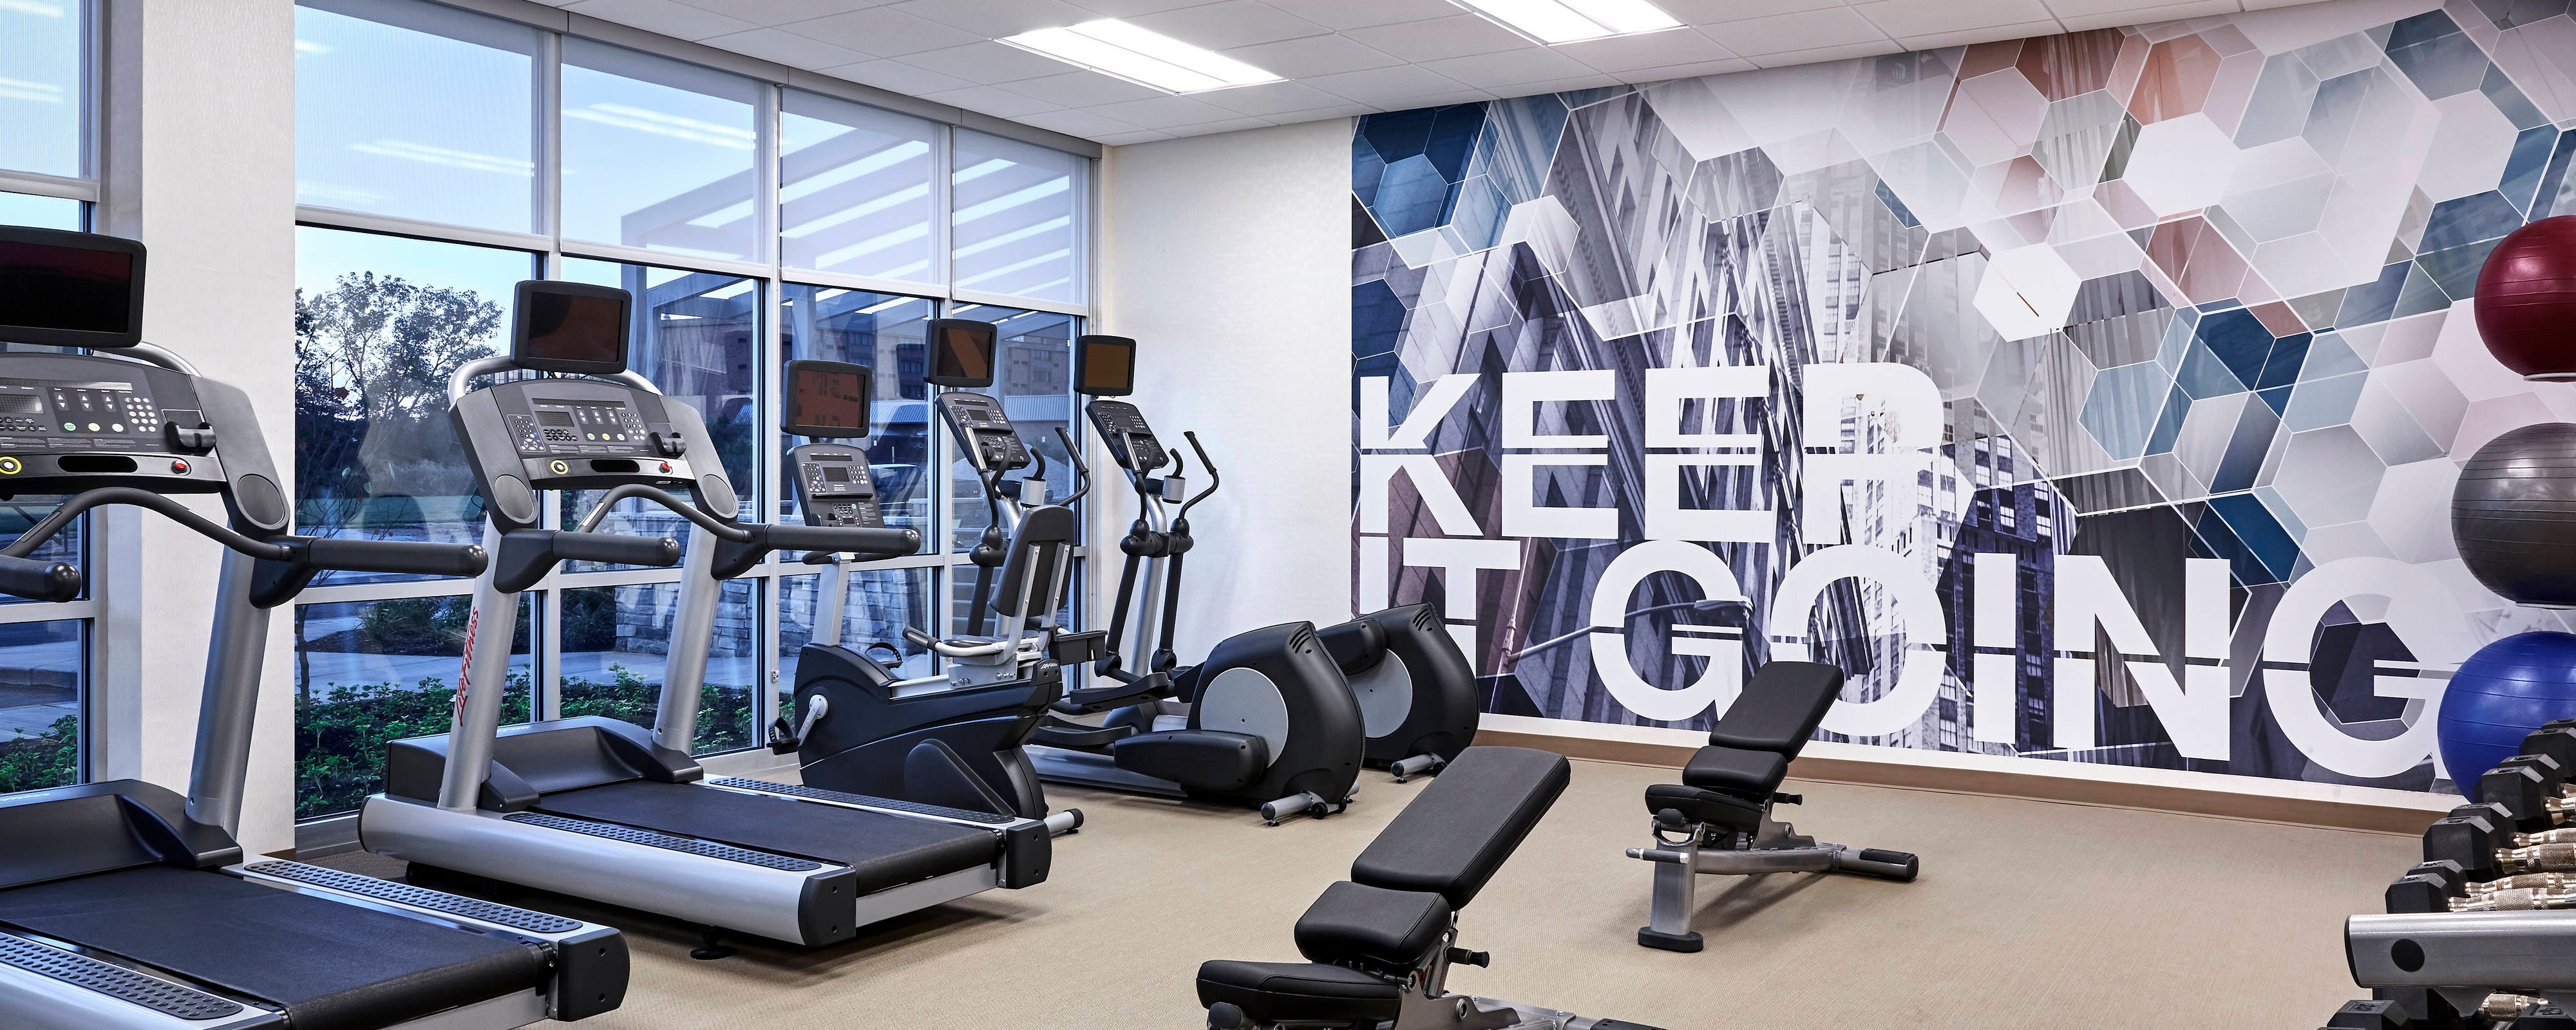 Residence Inn Fitness & Recreation